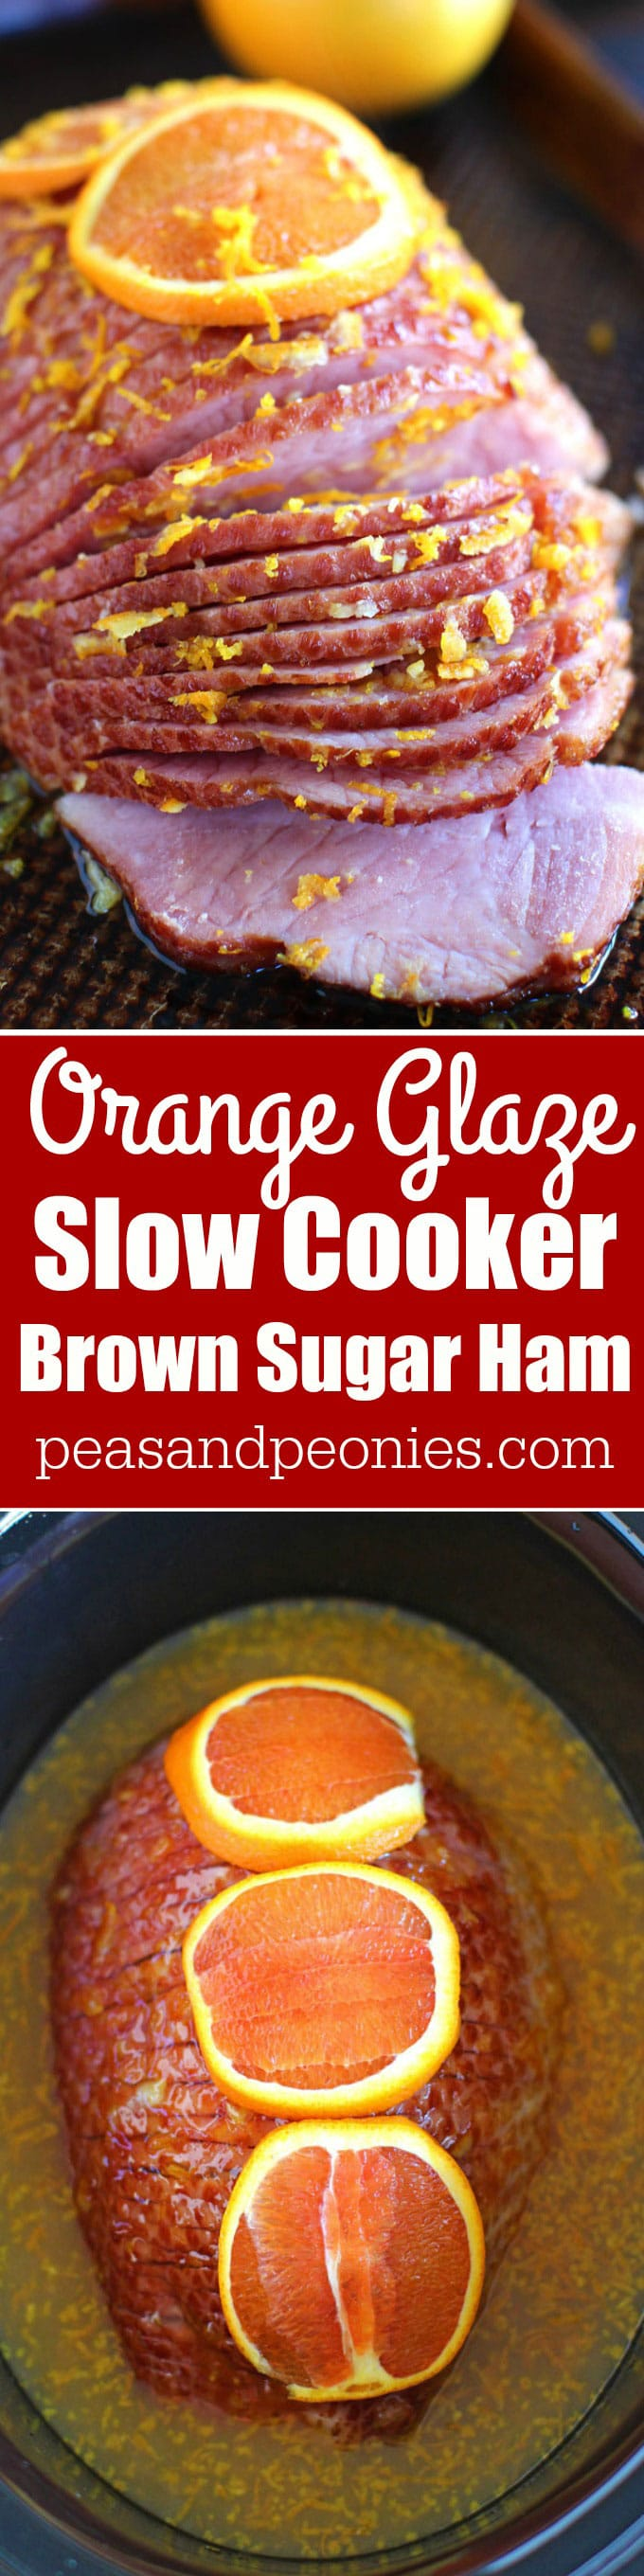 Slow Cooker Brown Sugar Ham with Orange Glaze is an amazingly flavorful and refreshing way to easily cook ham to juicy perfection in your slow cooker.